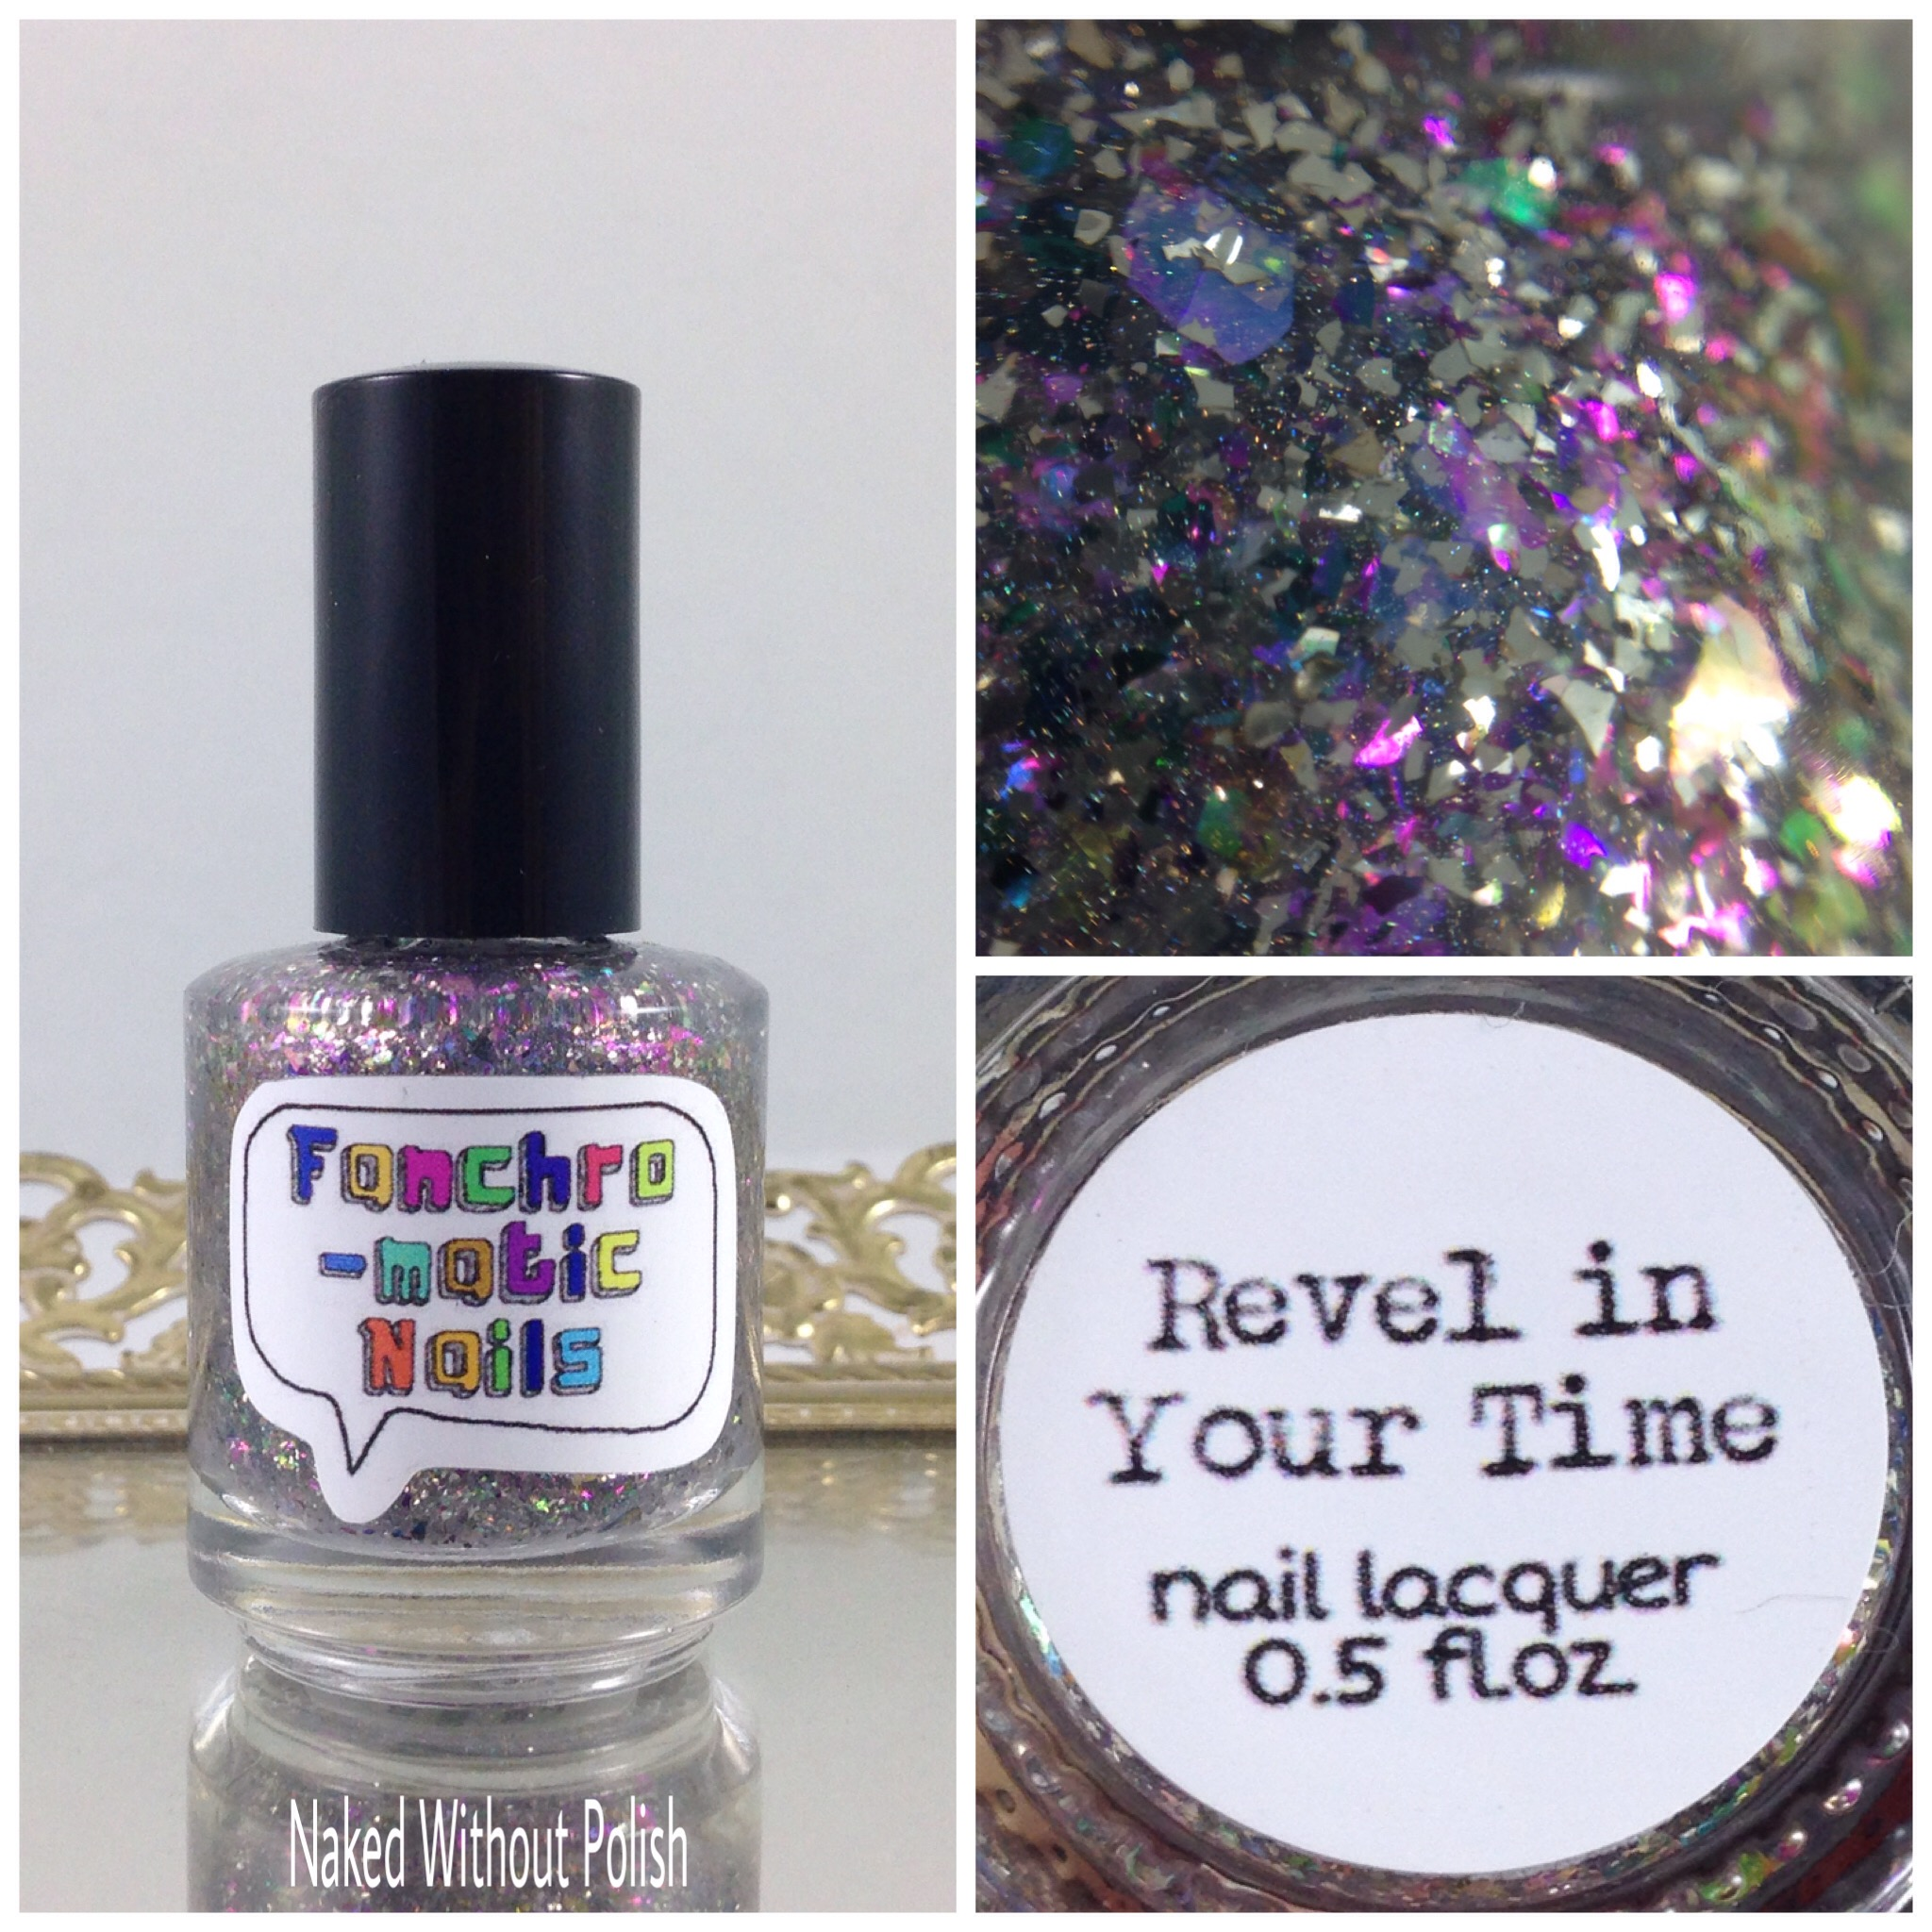 Fanchromatic-Nails-Revel-in-Your-Time-1